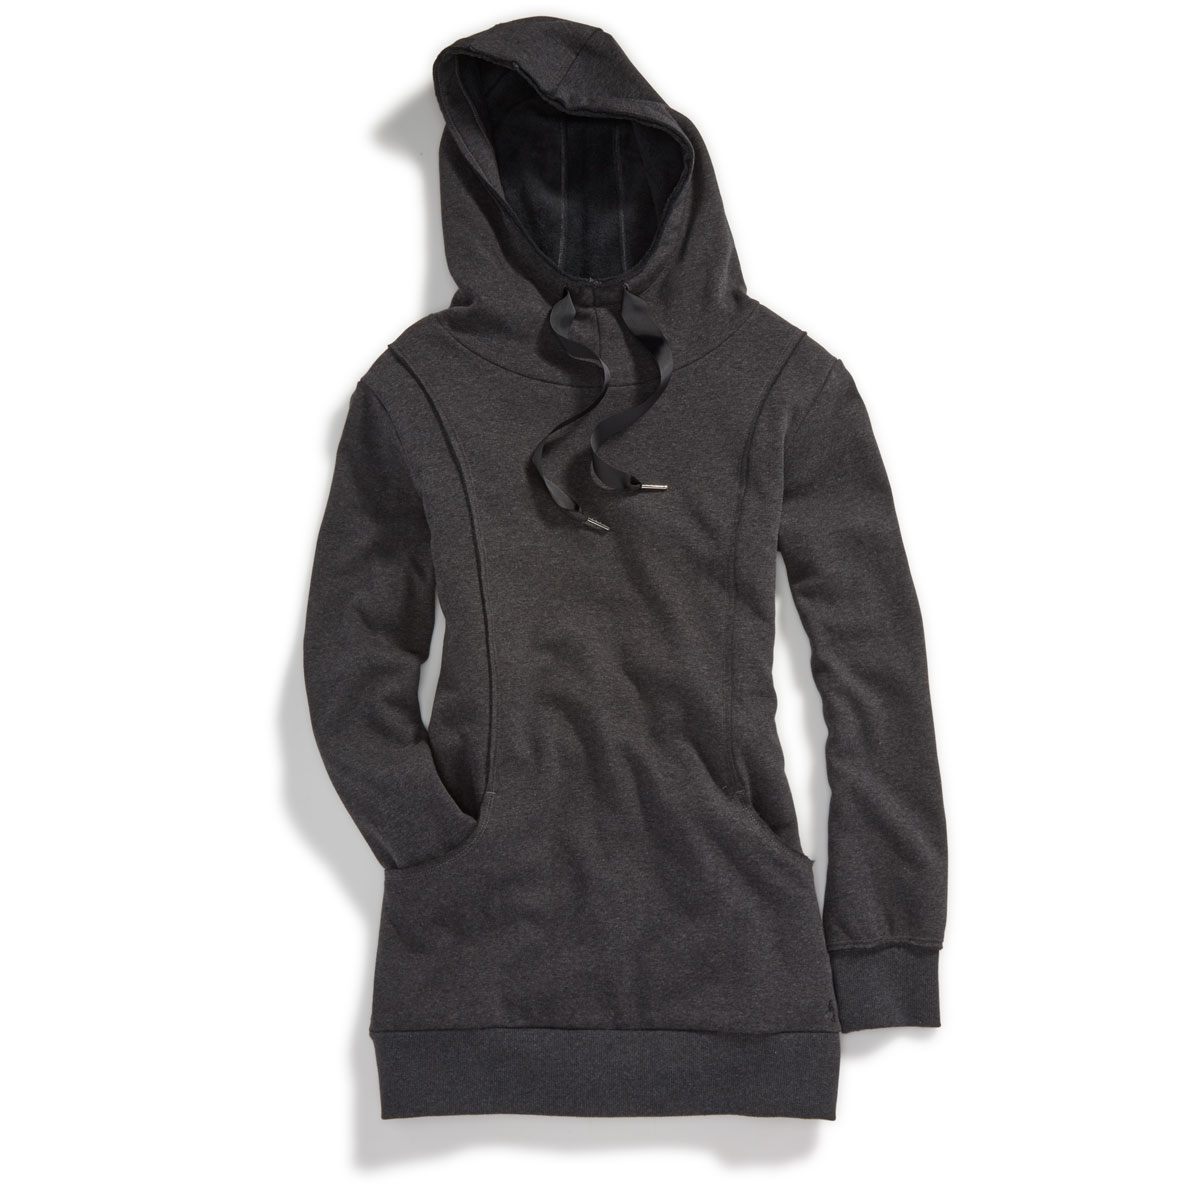 EMS Women's Canyon Pullover Hoodie - Size XS